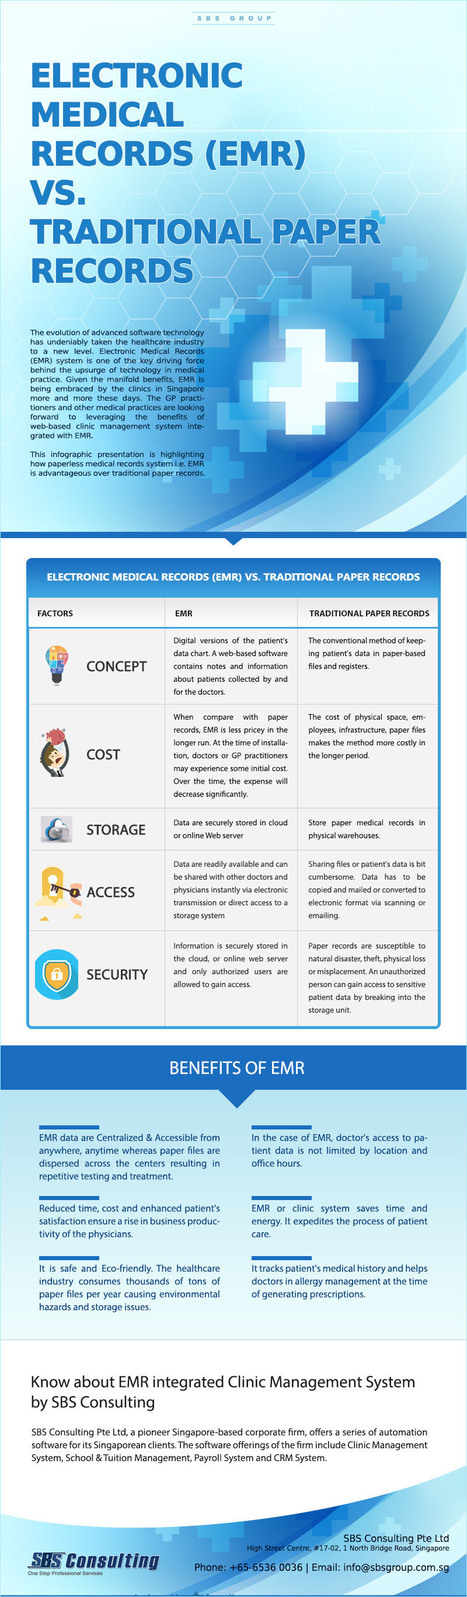 Electronic Medical Records (EMR) Vs. Traditional Paper Records- Infographic | Visual.ly | Business Software Provider | Scoop.it